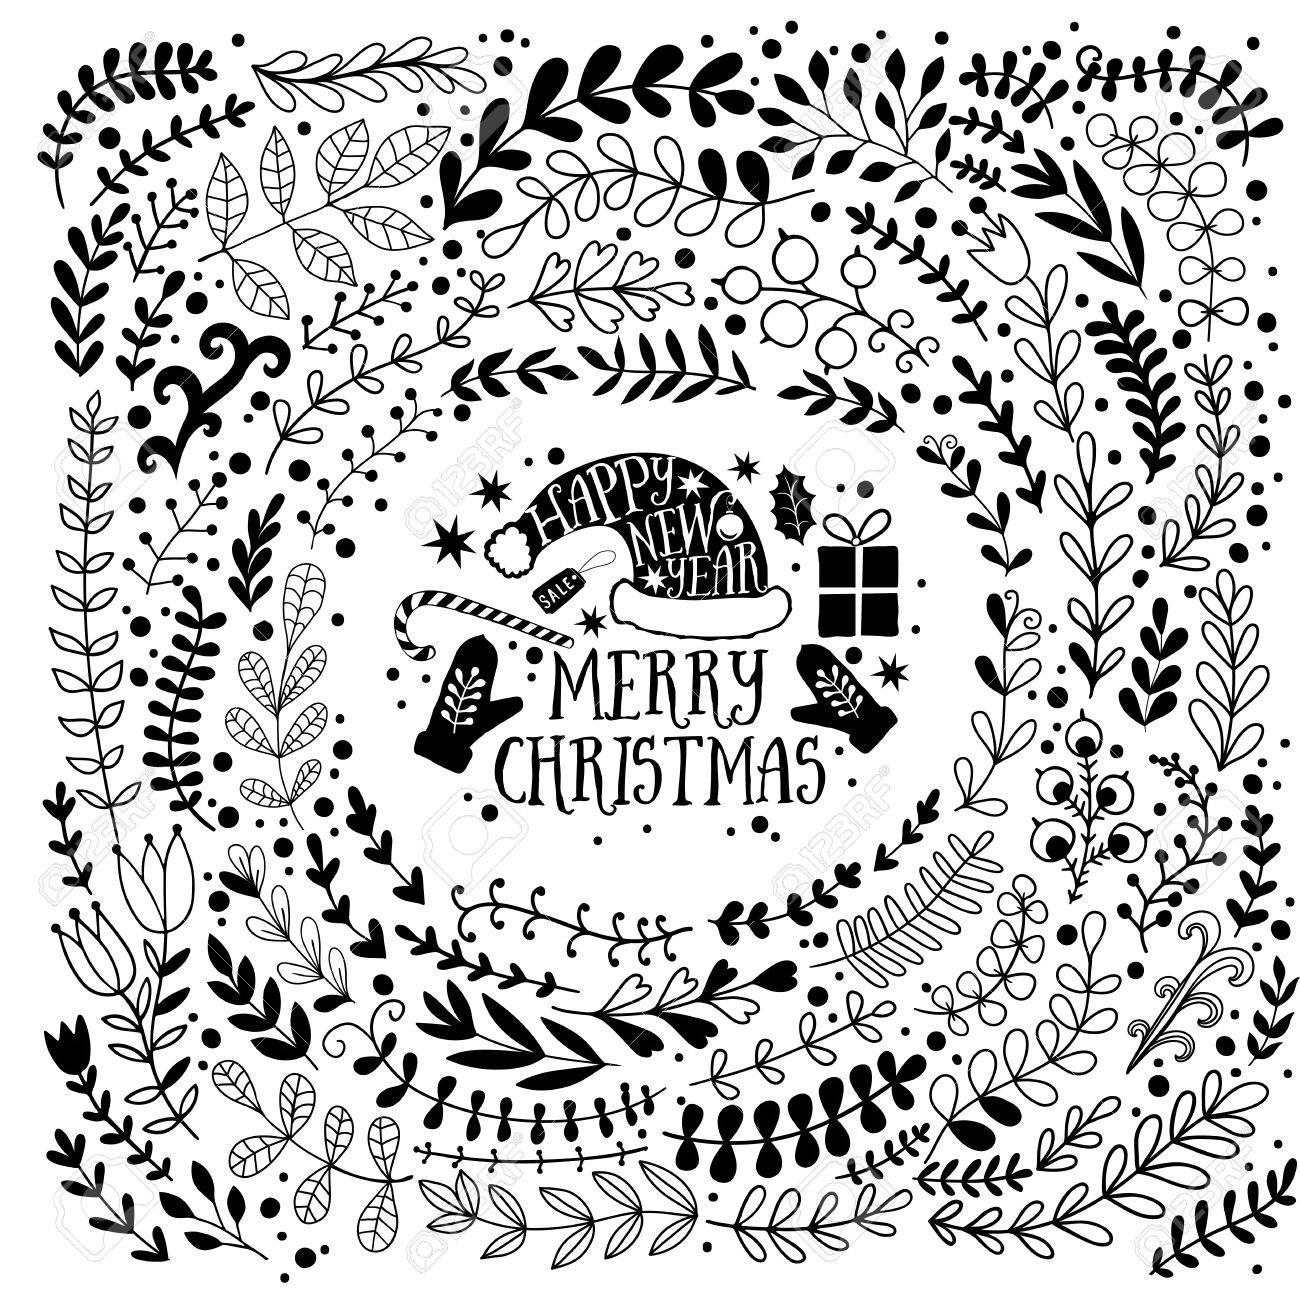 Merry Christmas Vector Greetings Illustration Colorful Leaf Design Happy New Year Card Frame